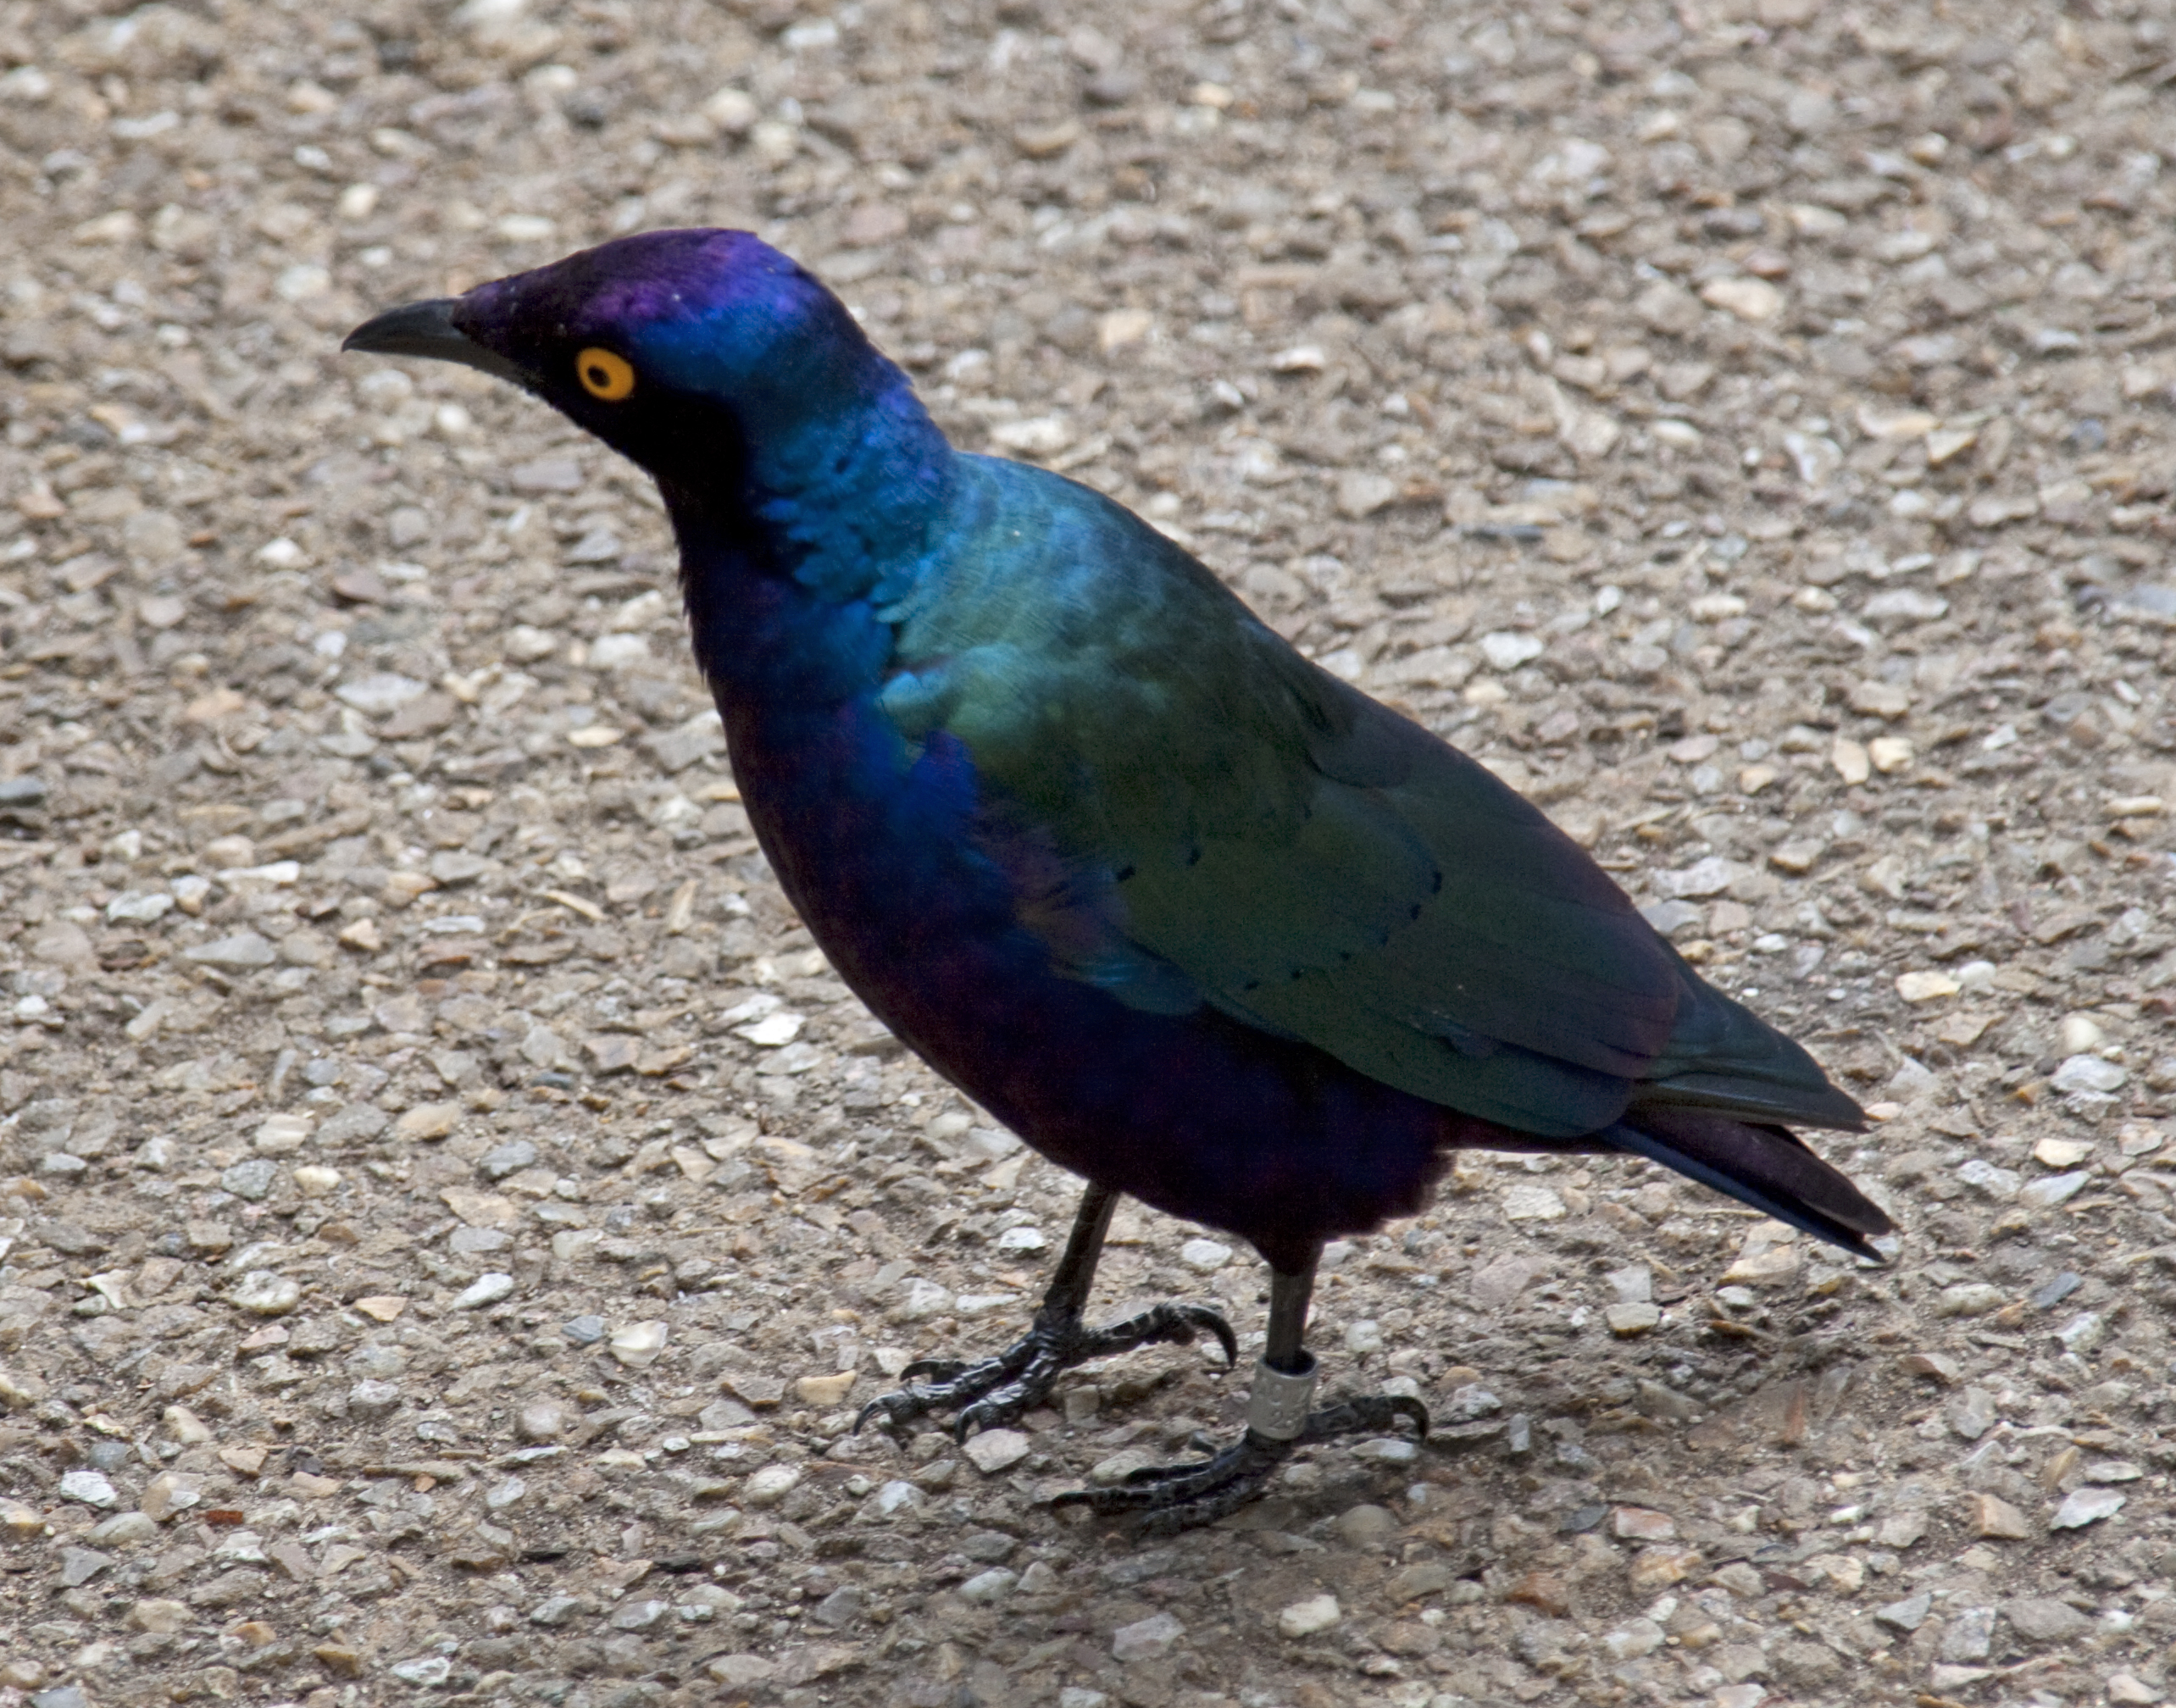 Http Commons Wikimedia Org Wiki File Glossy Starling Blue And Purple Bird 3 4872087117 Jpg